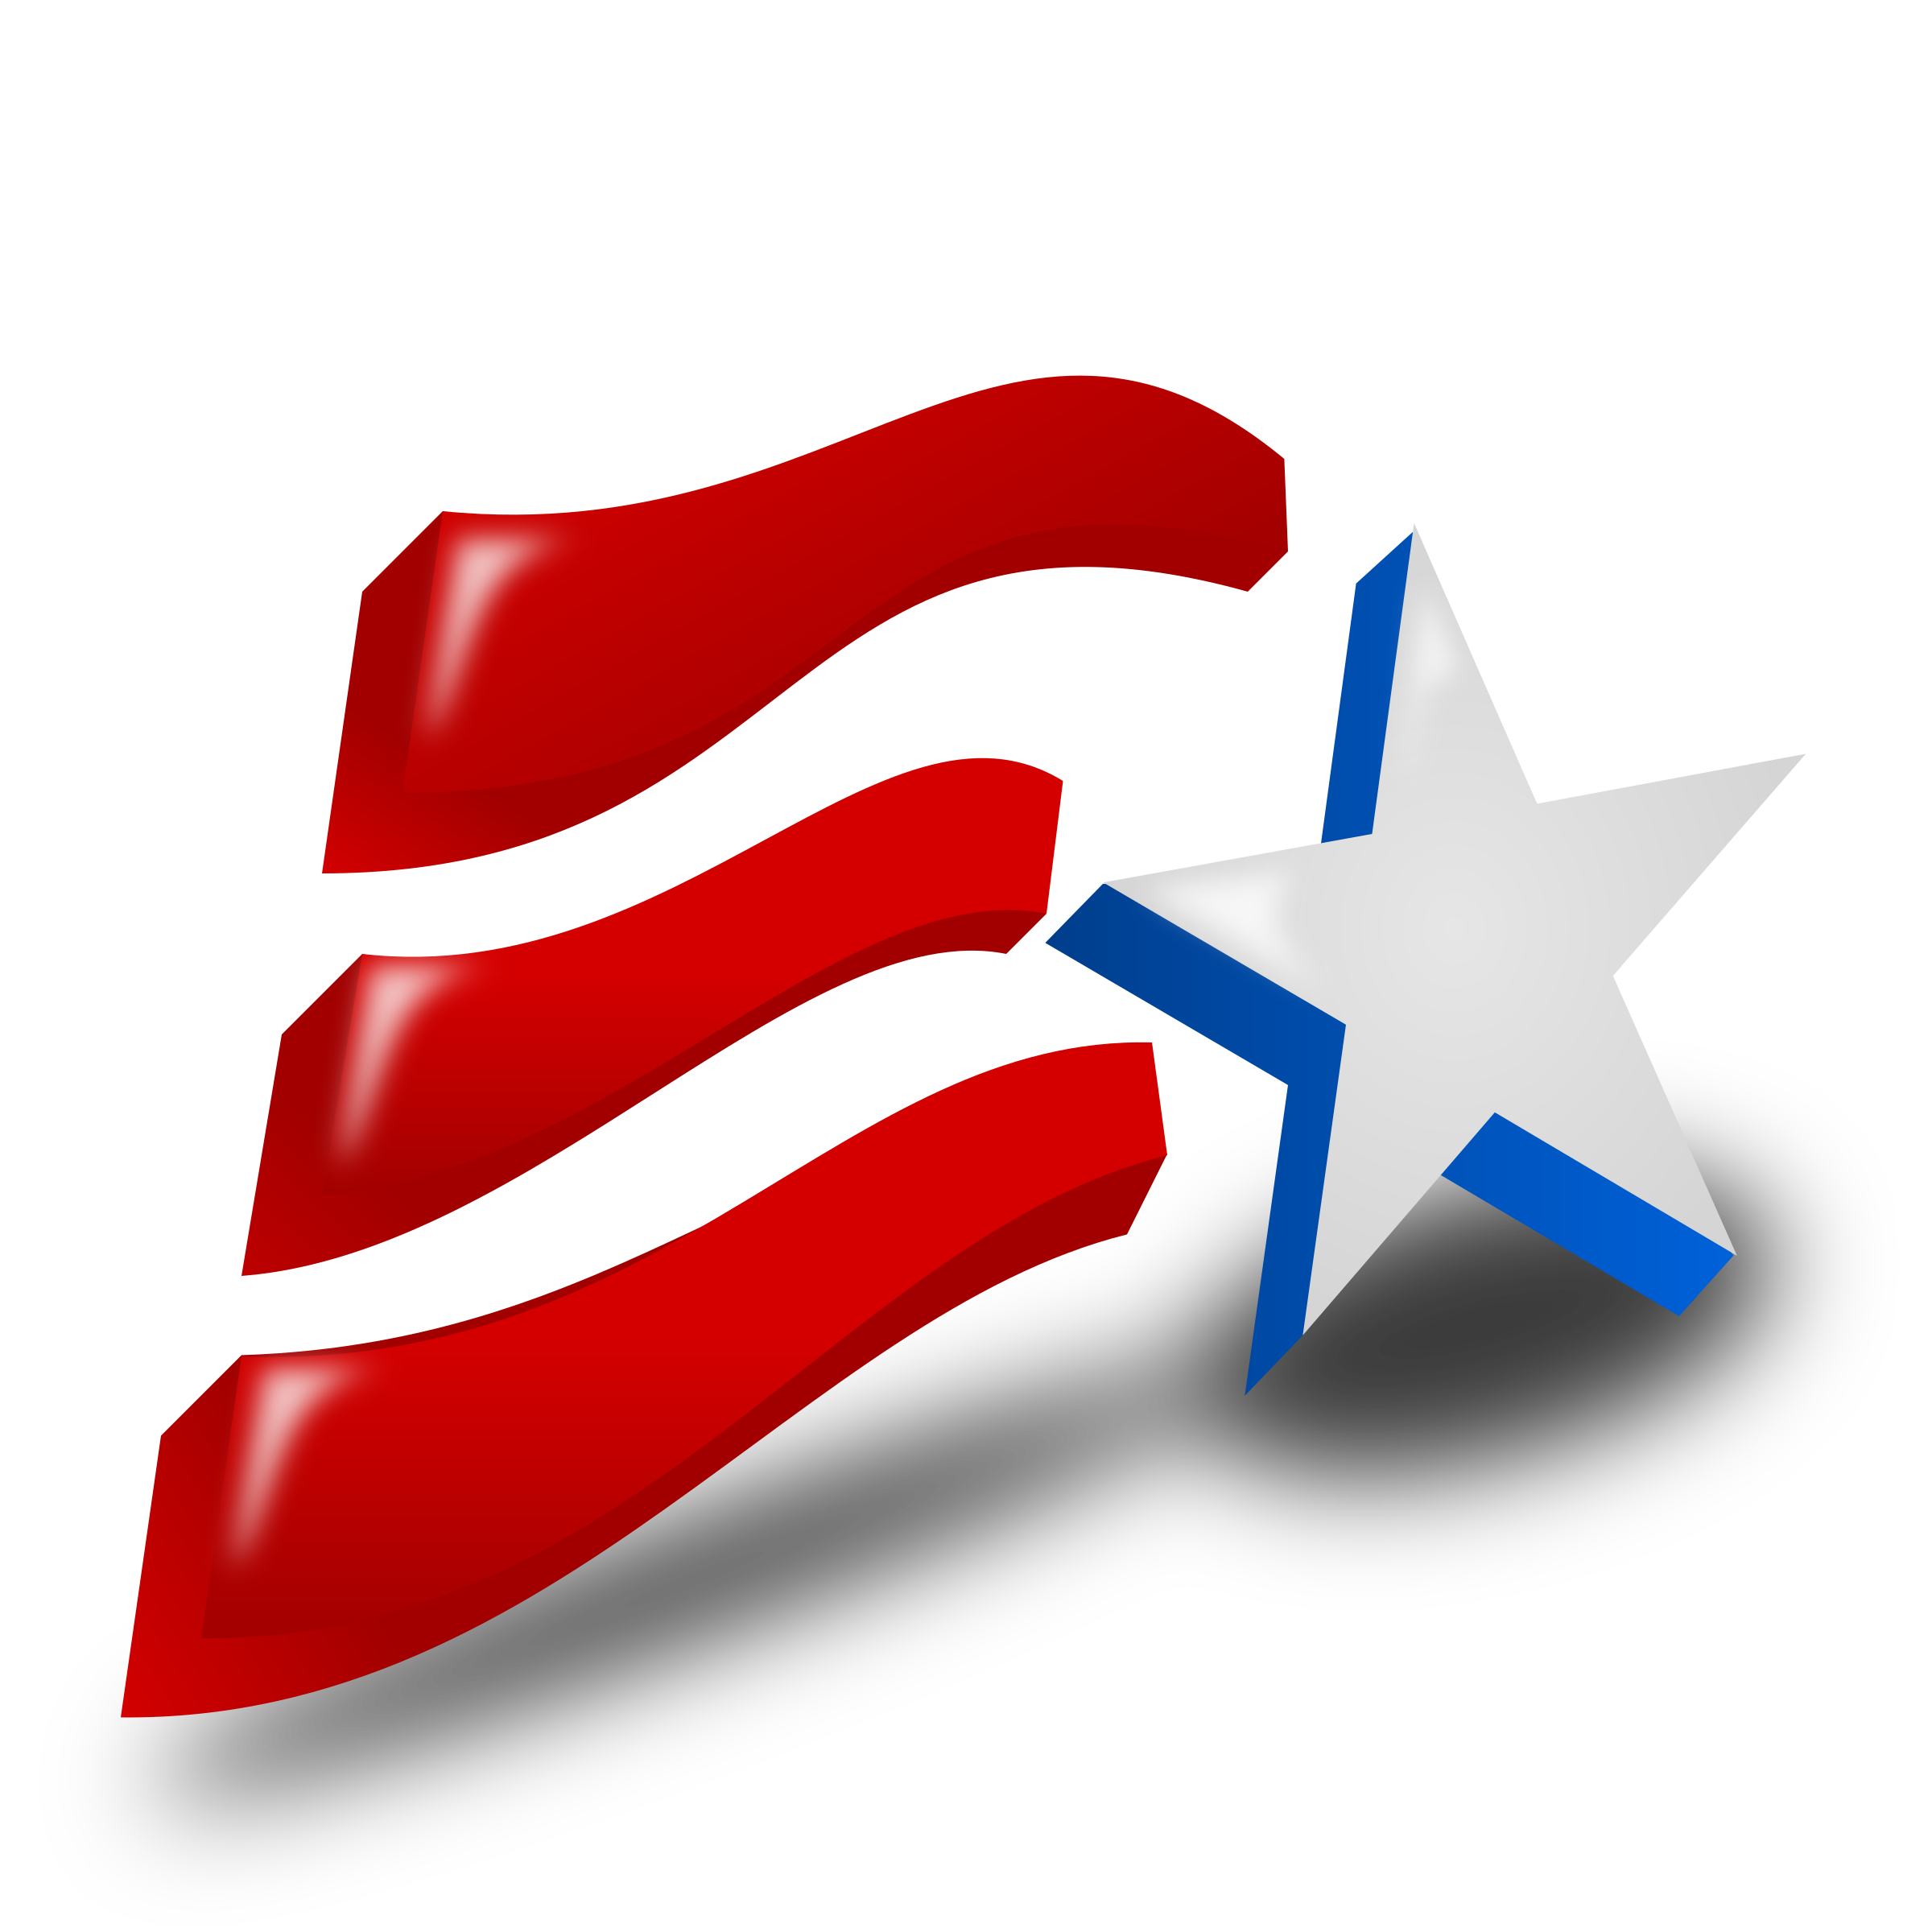 Independence clipart. Day usa icon big